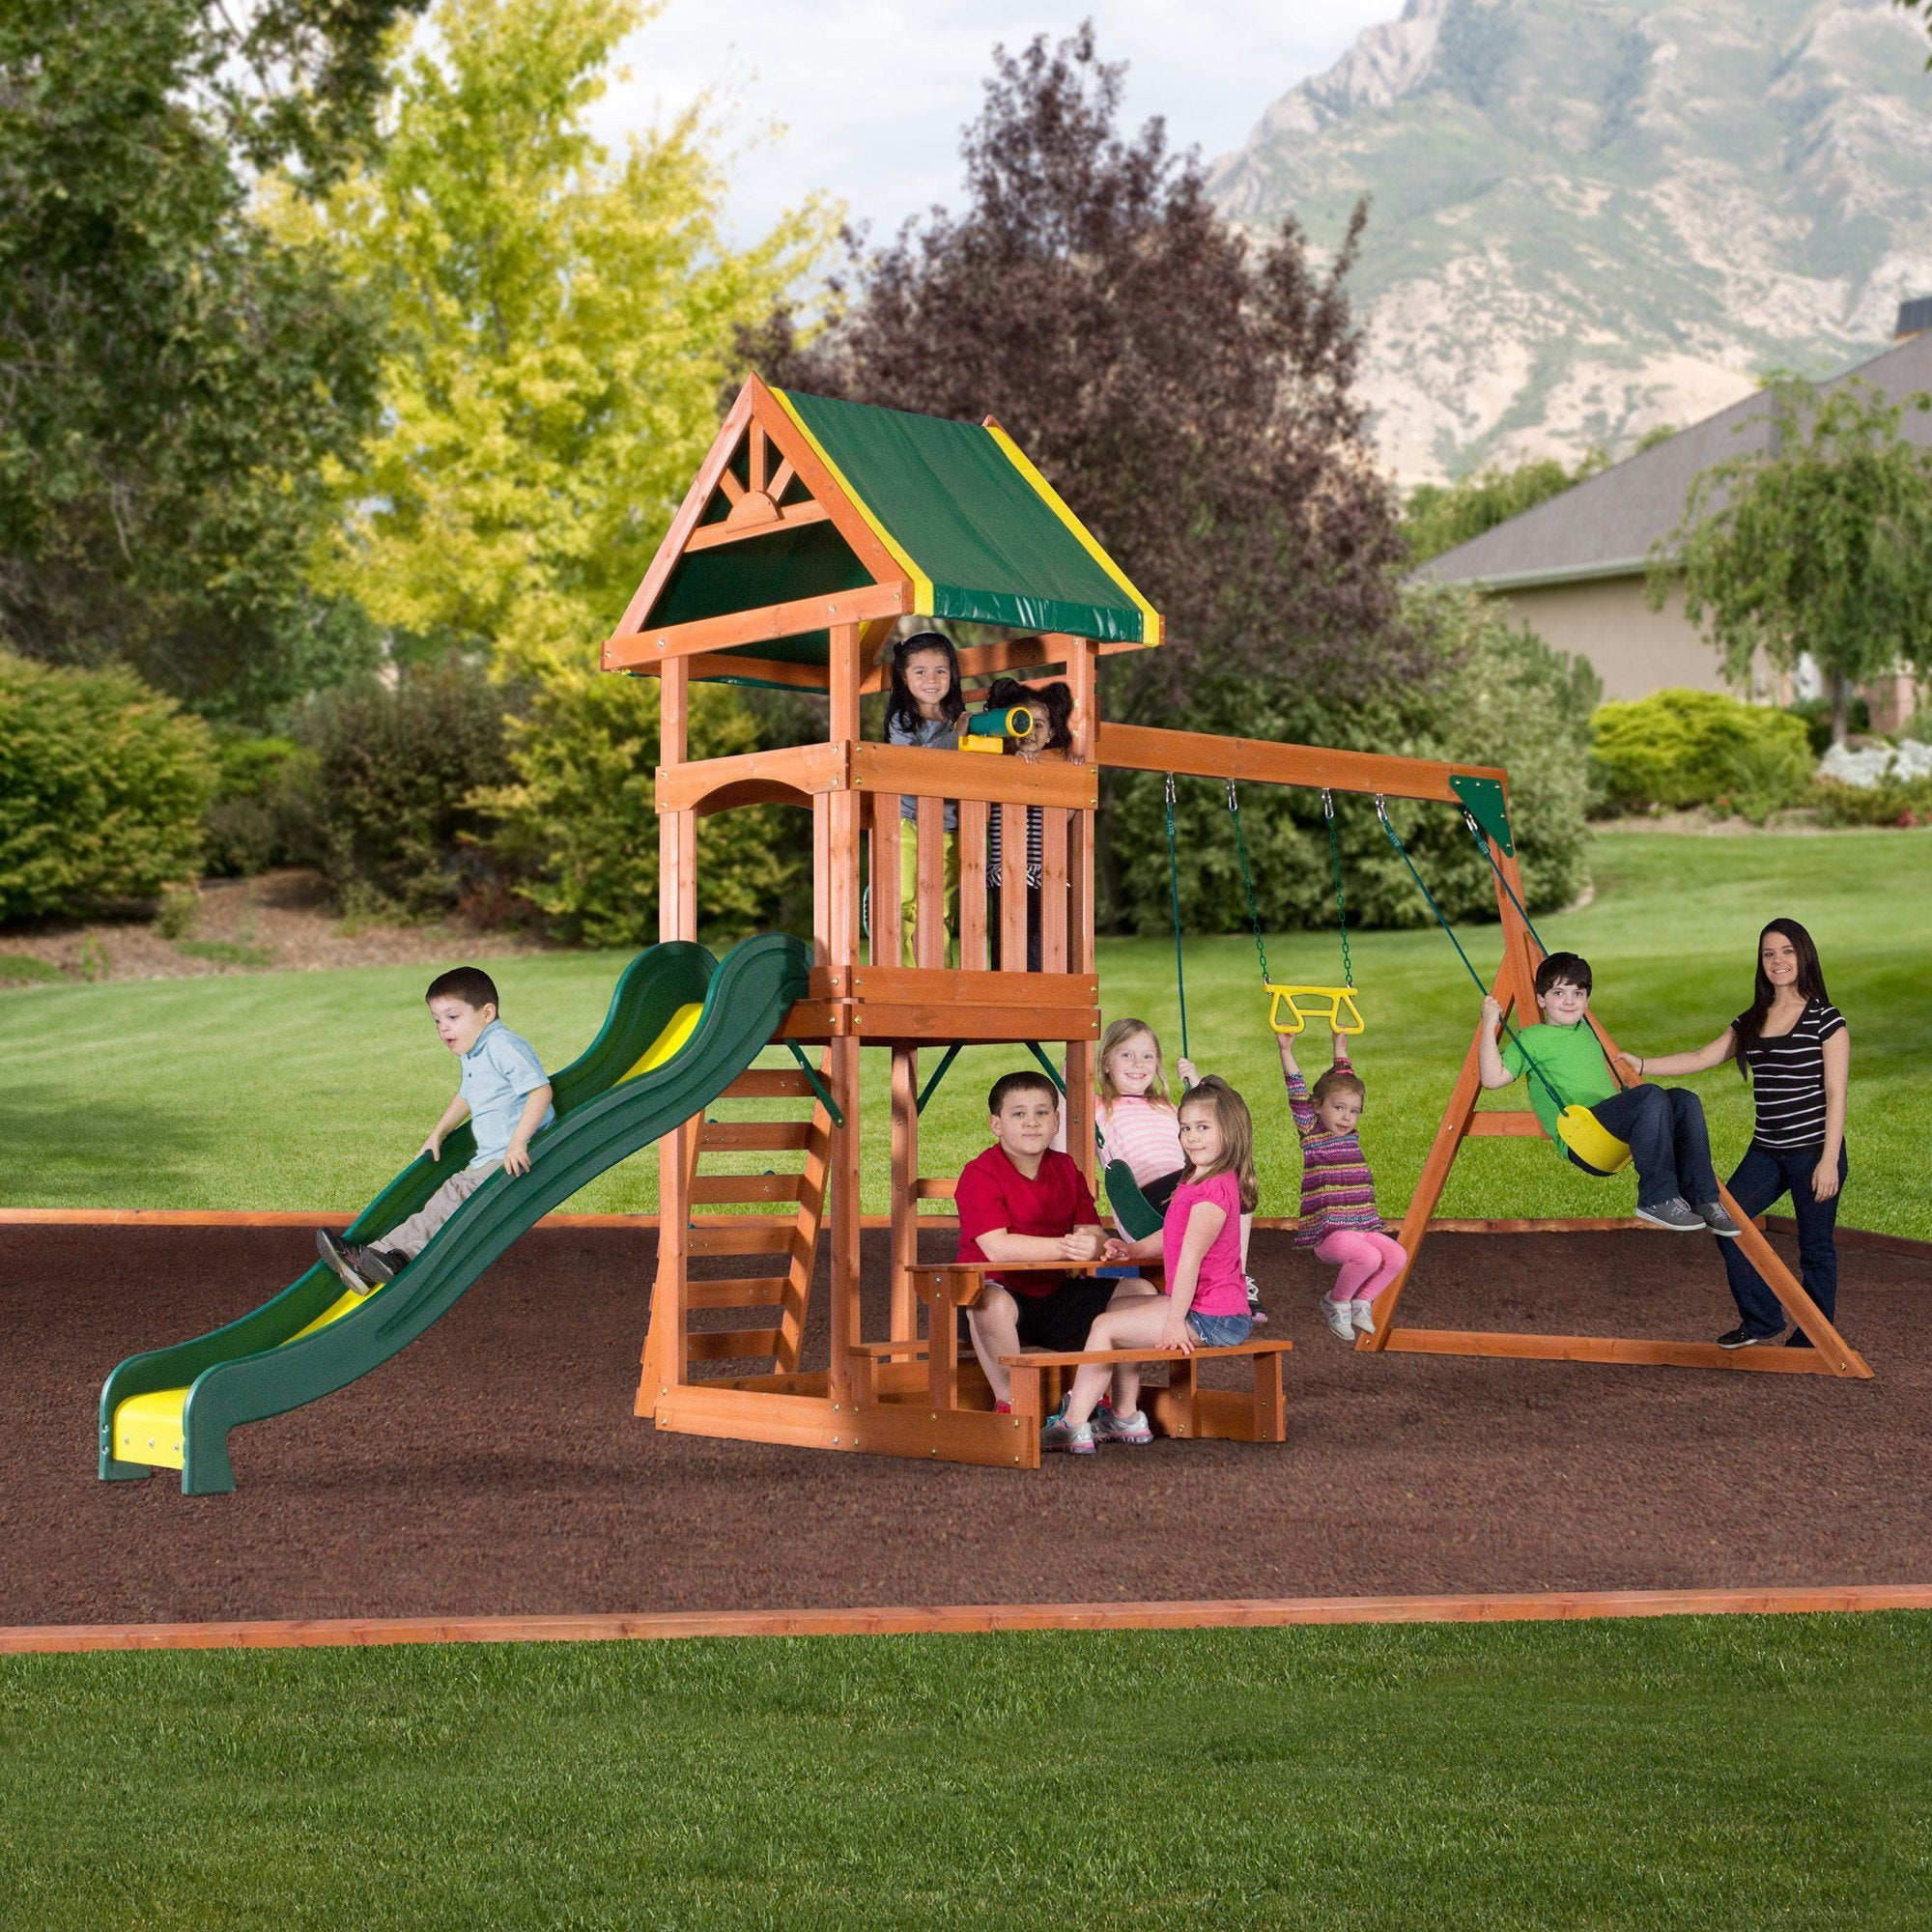 nla dillon wooden swing set 1 jpg v u003d1457802192